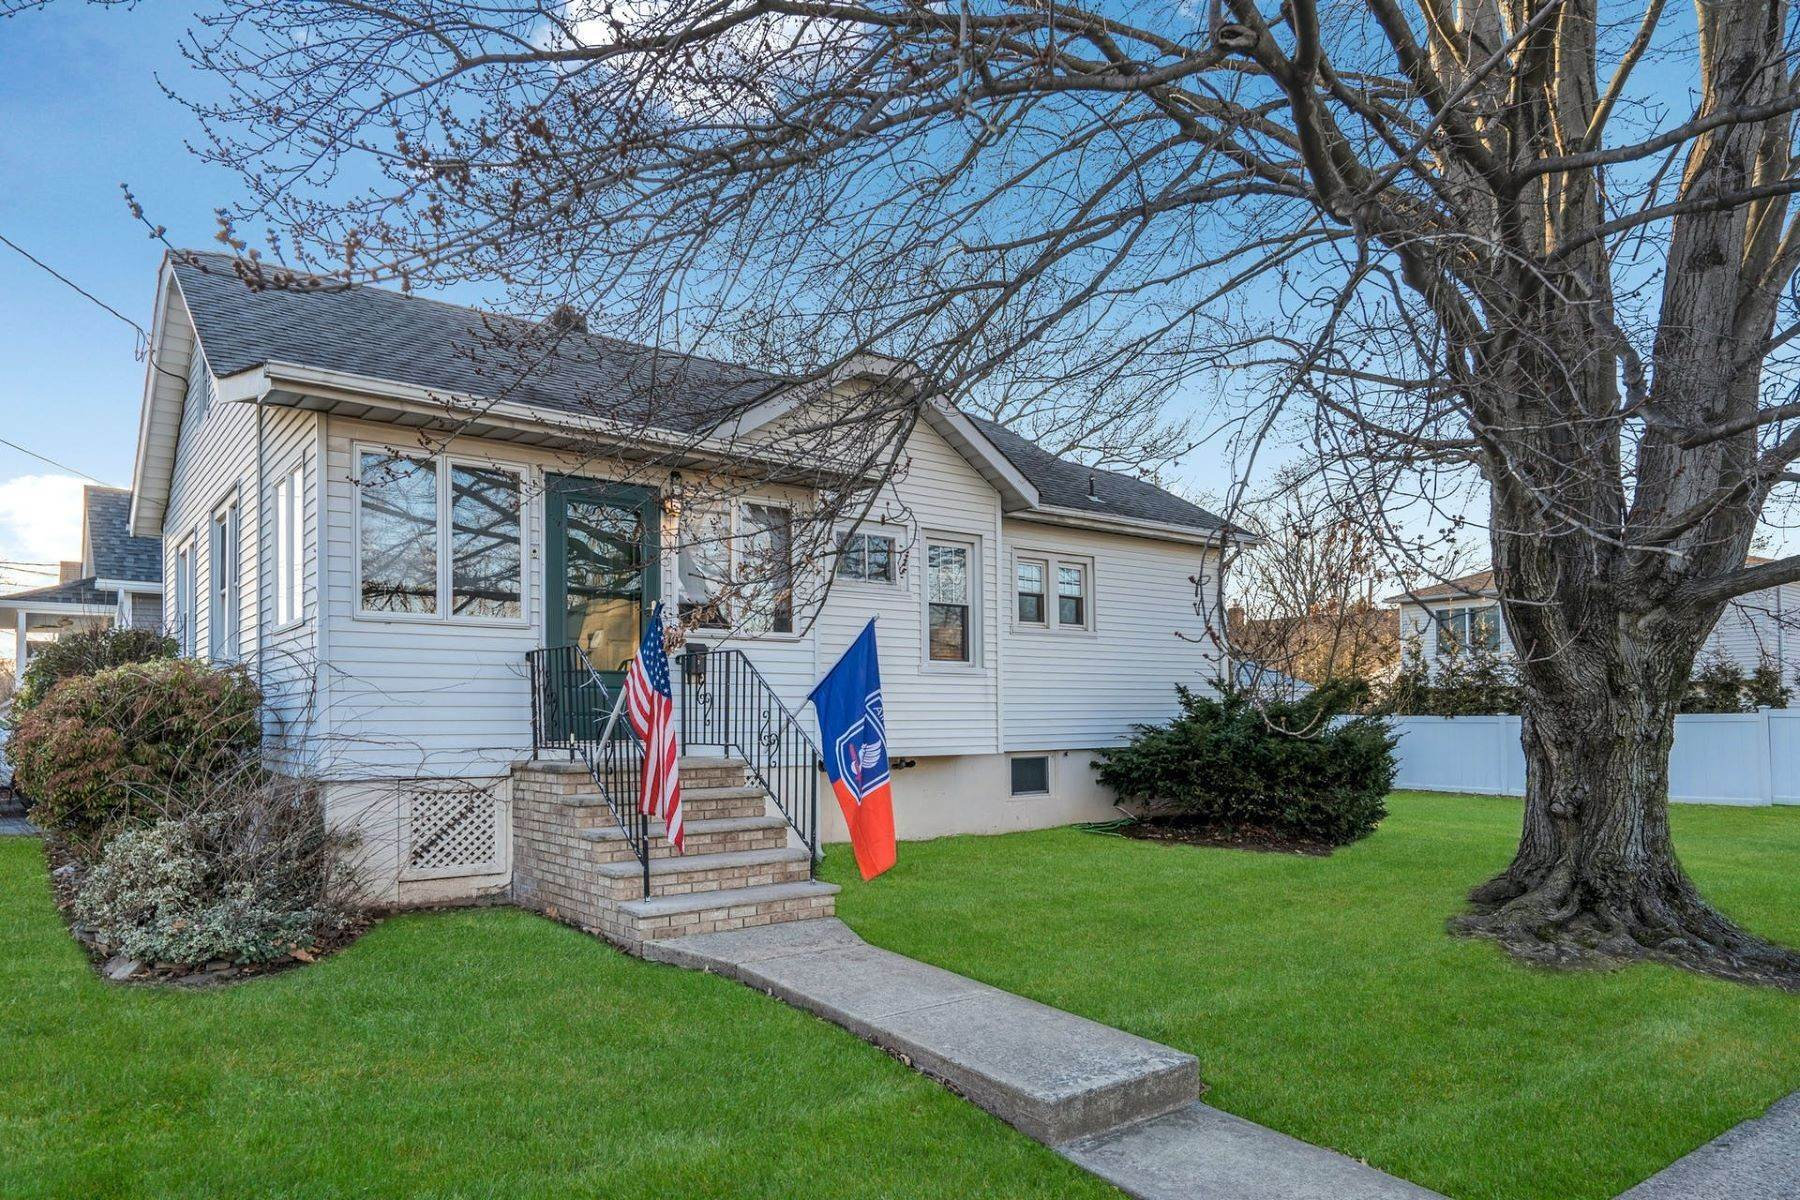 Single Family Homes for Sale at BRIGHT & AIRY, METICULOUSLY MAINTAINED SECOND FLOOR CONDOMINIUM UNIT. 762 Vernon Avenue Kenilworth, New Jersey 07033 United States